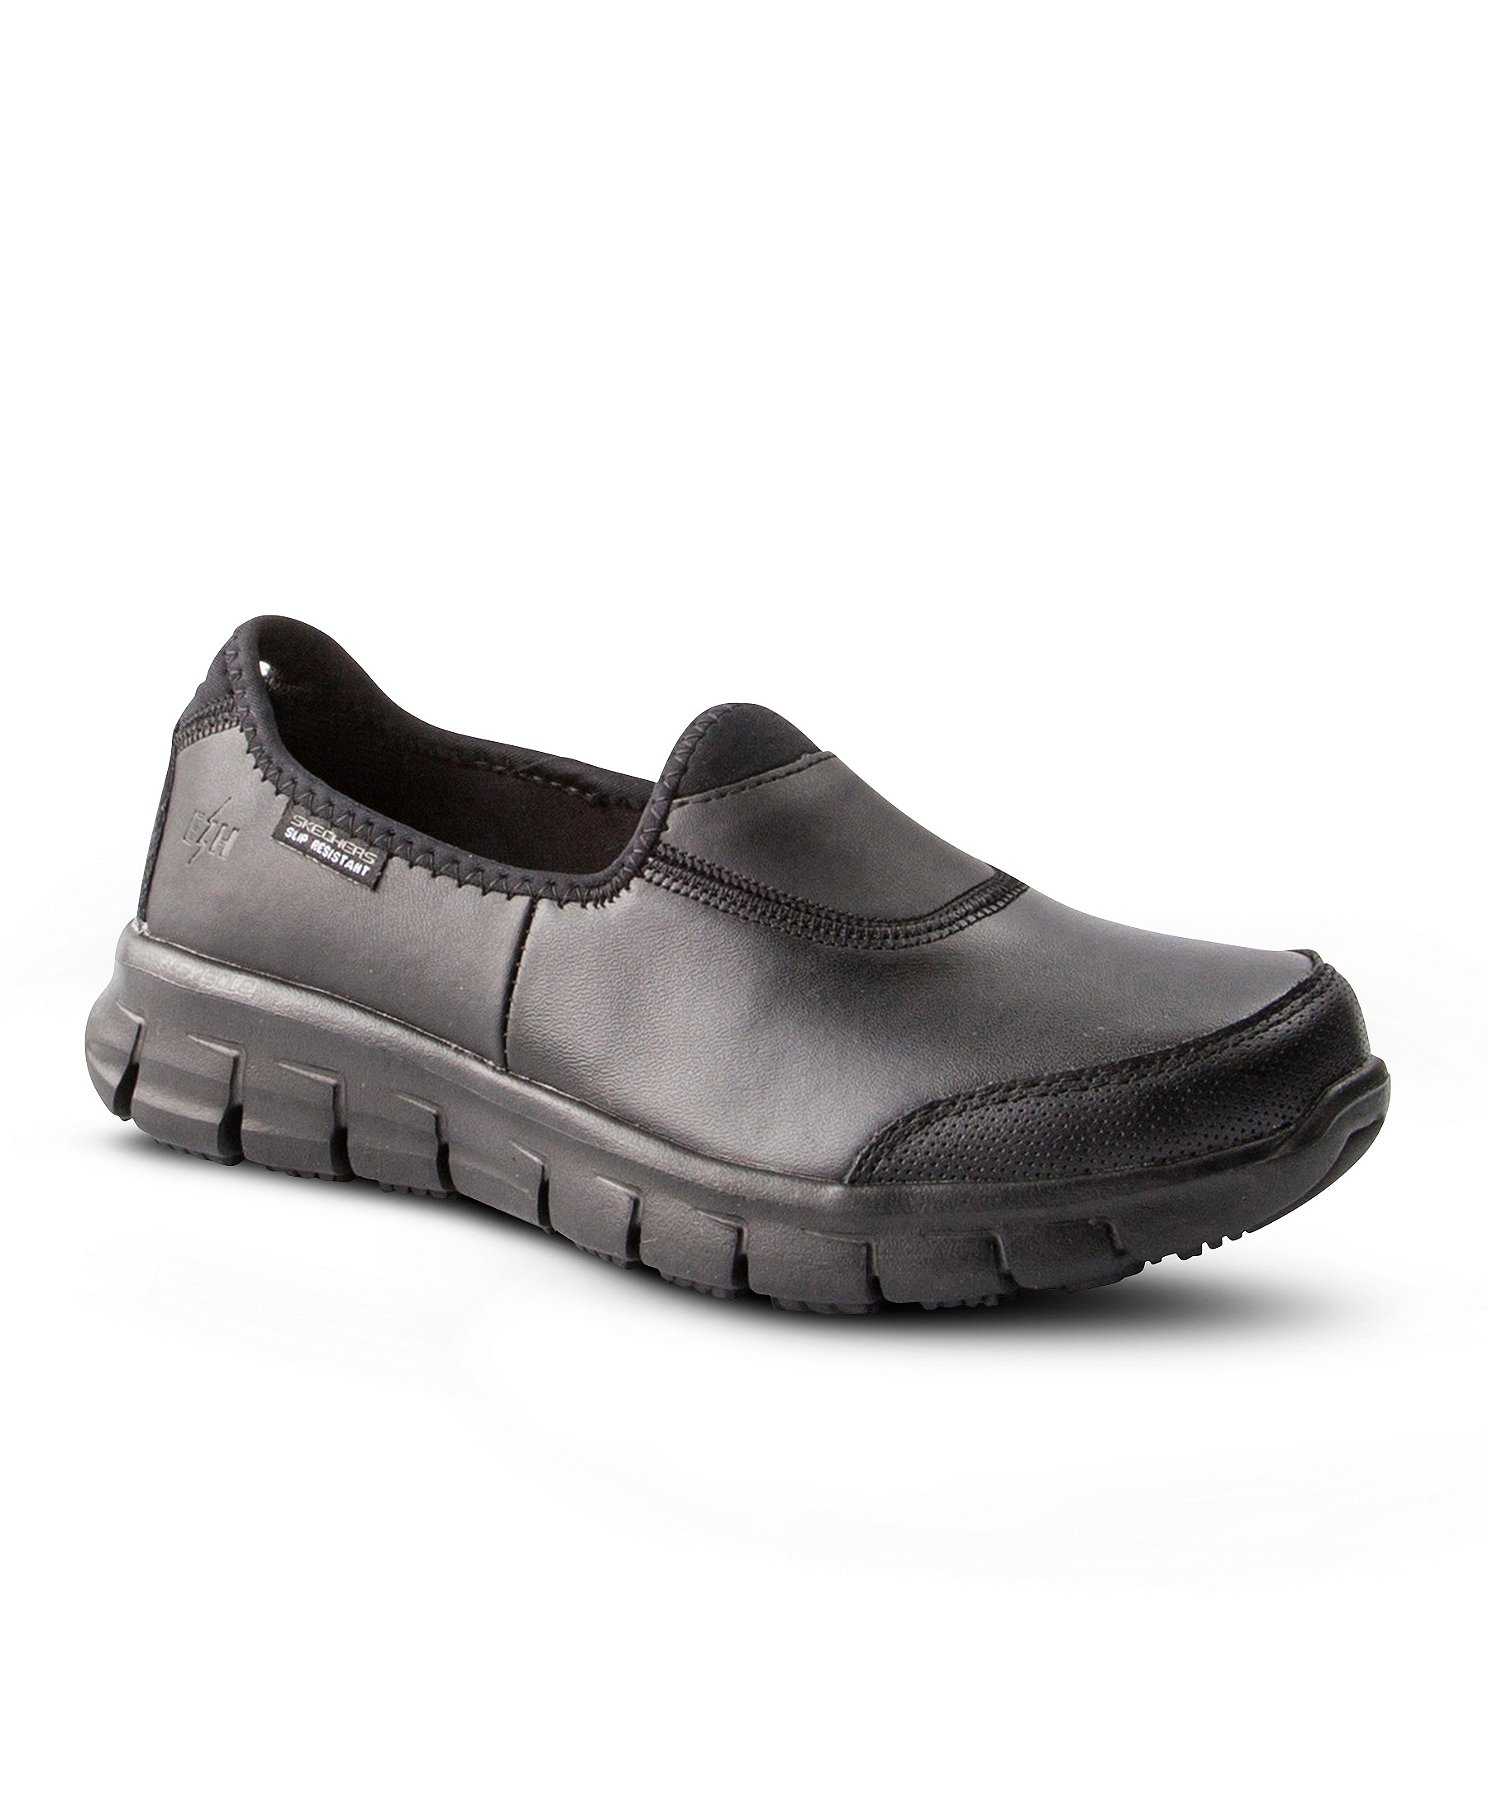 Women's Sure Track Non Safety Slip Resistant Slip On Shoes